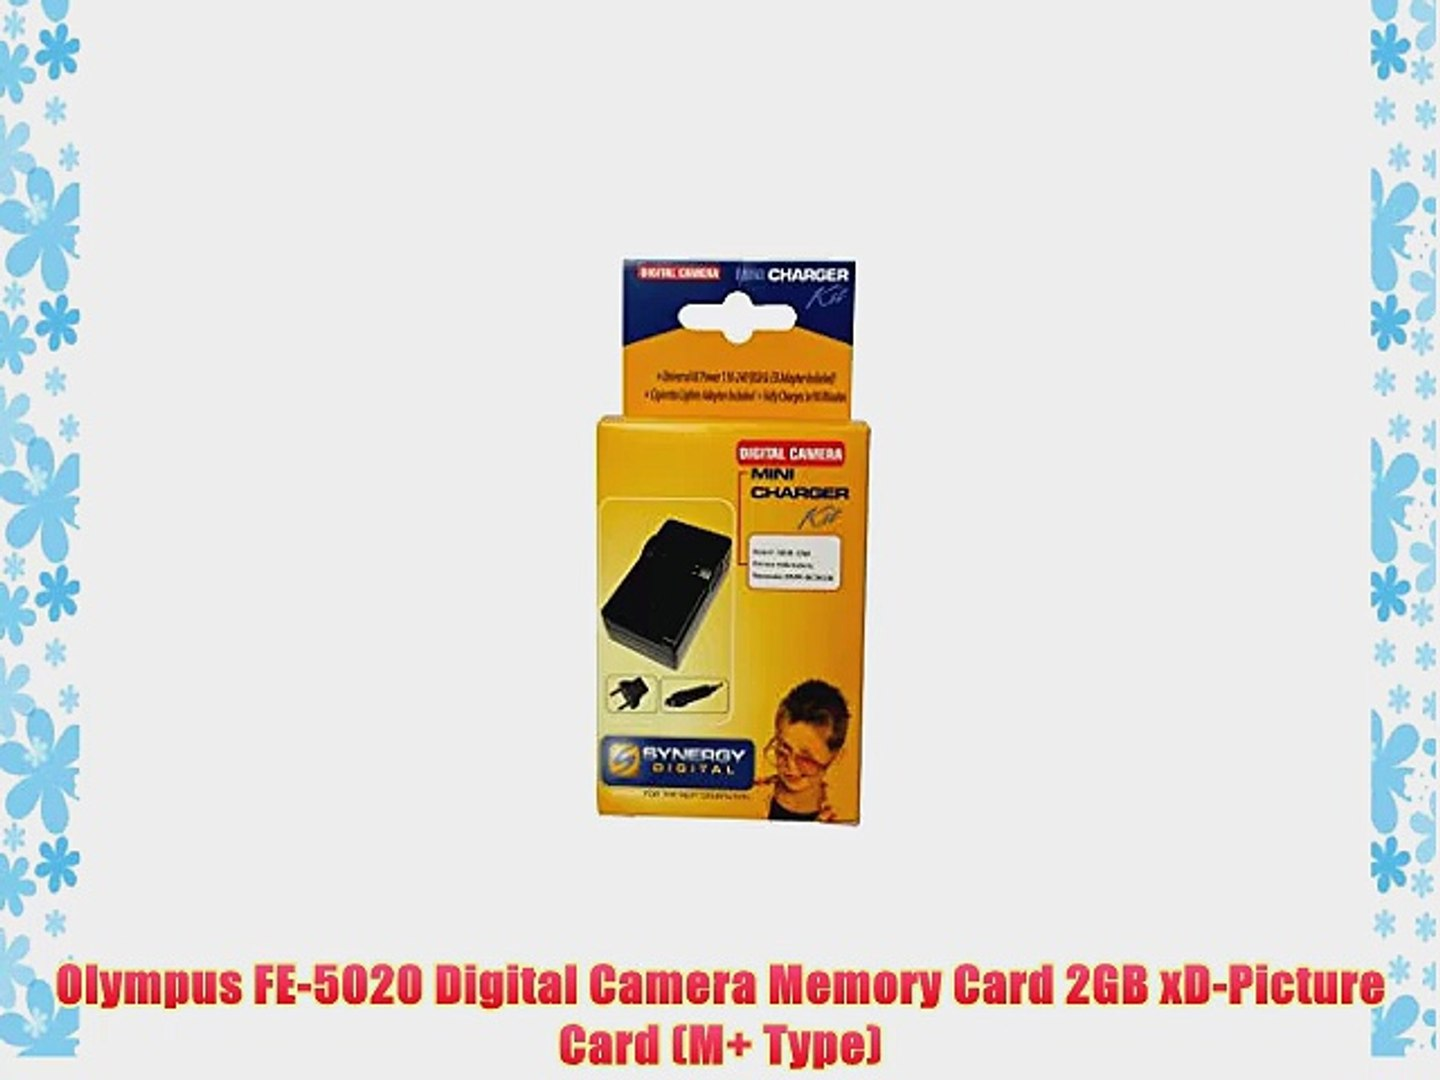 2GB XD MEMORY CARD for OLYMPUS FE-240 Digital Camera